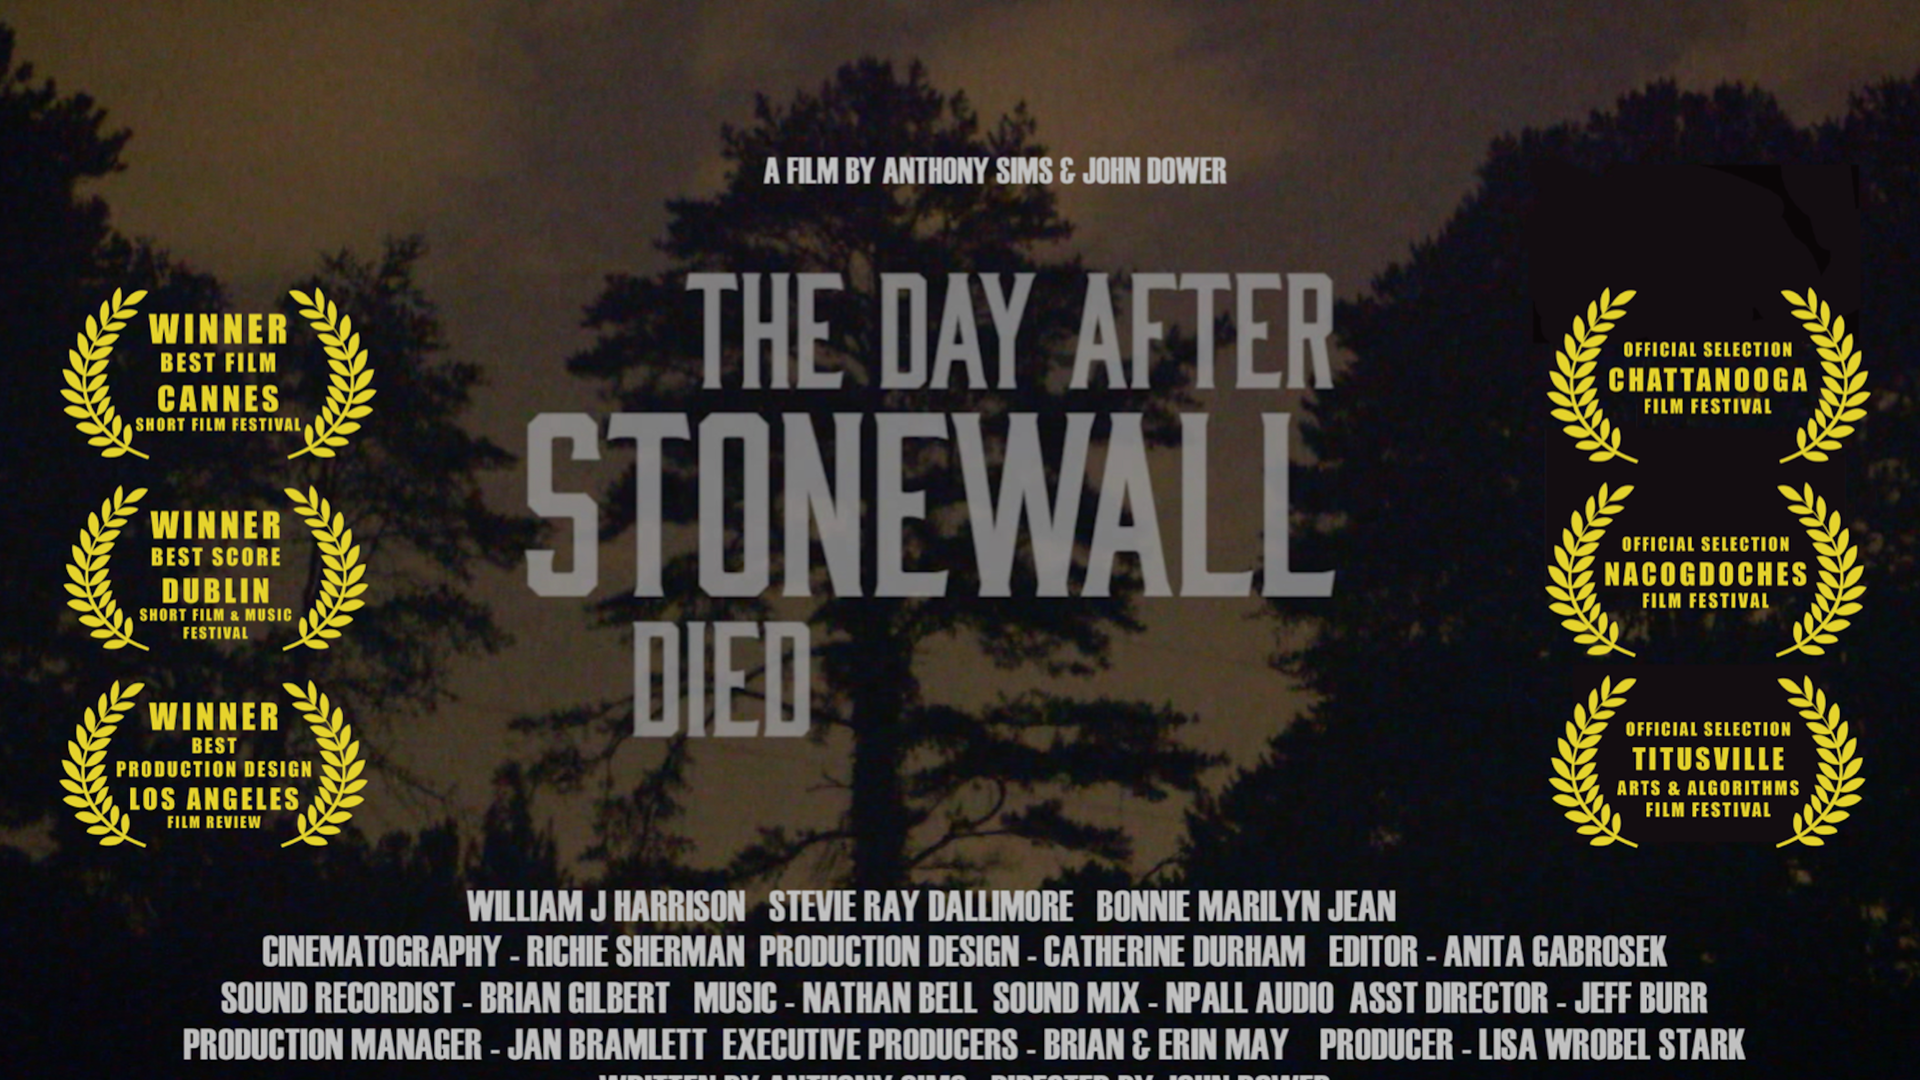 The Day After Stonewall Died